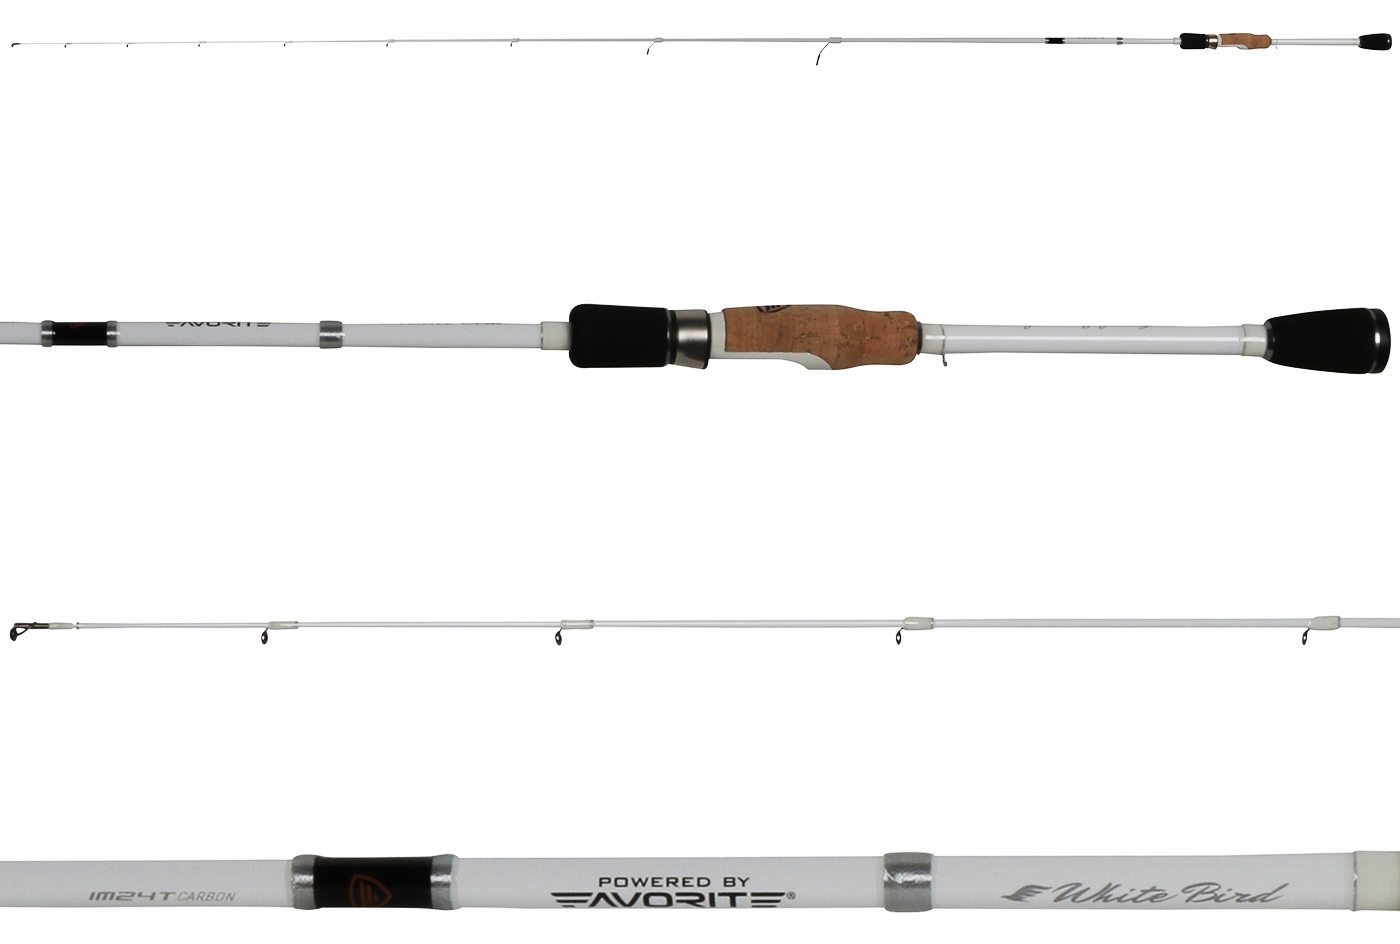 Powered By Favorite Wbr 731ml White Bird Spinning Rod